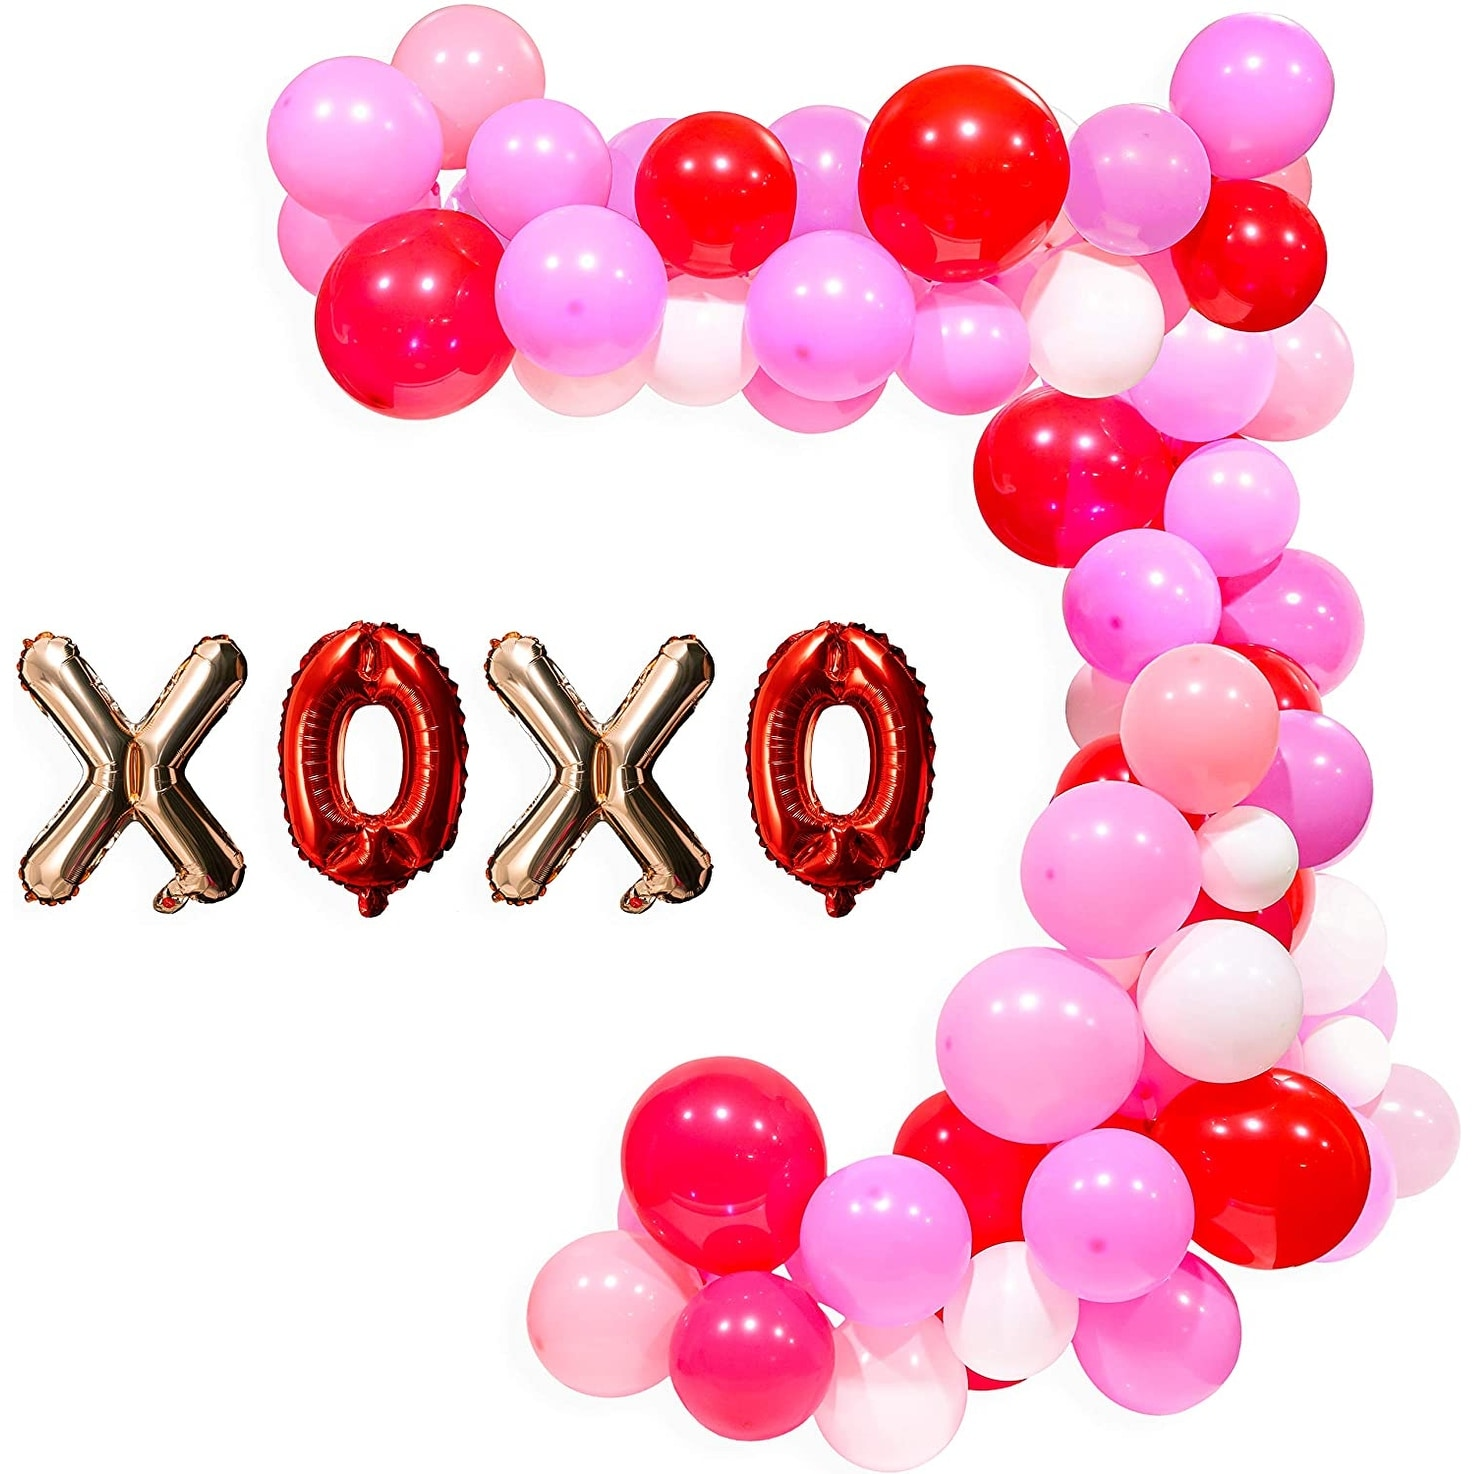 Garland /& Arch Kit 82 Pieces Latex Balloons Confetti Balloons Colorful Party Balloons for Christmas Valentines Day St 12 inch Red and Green Patricks Day